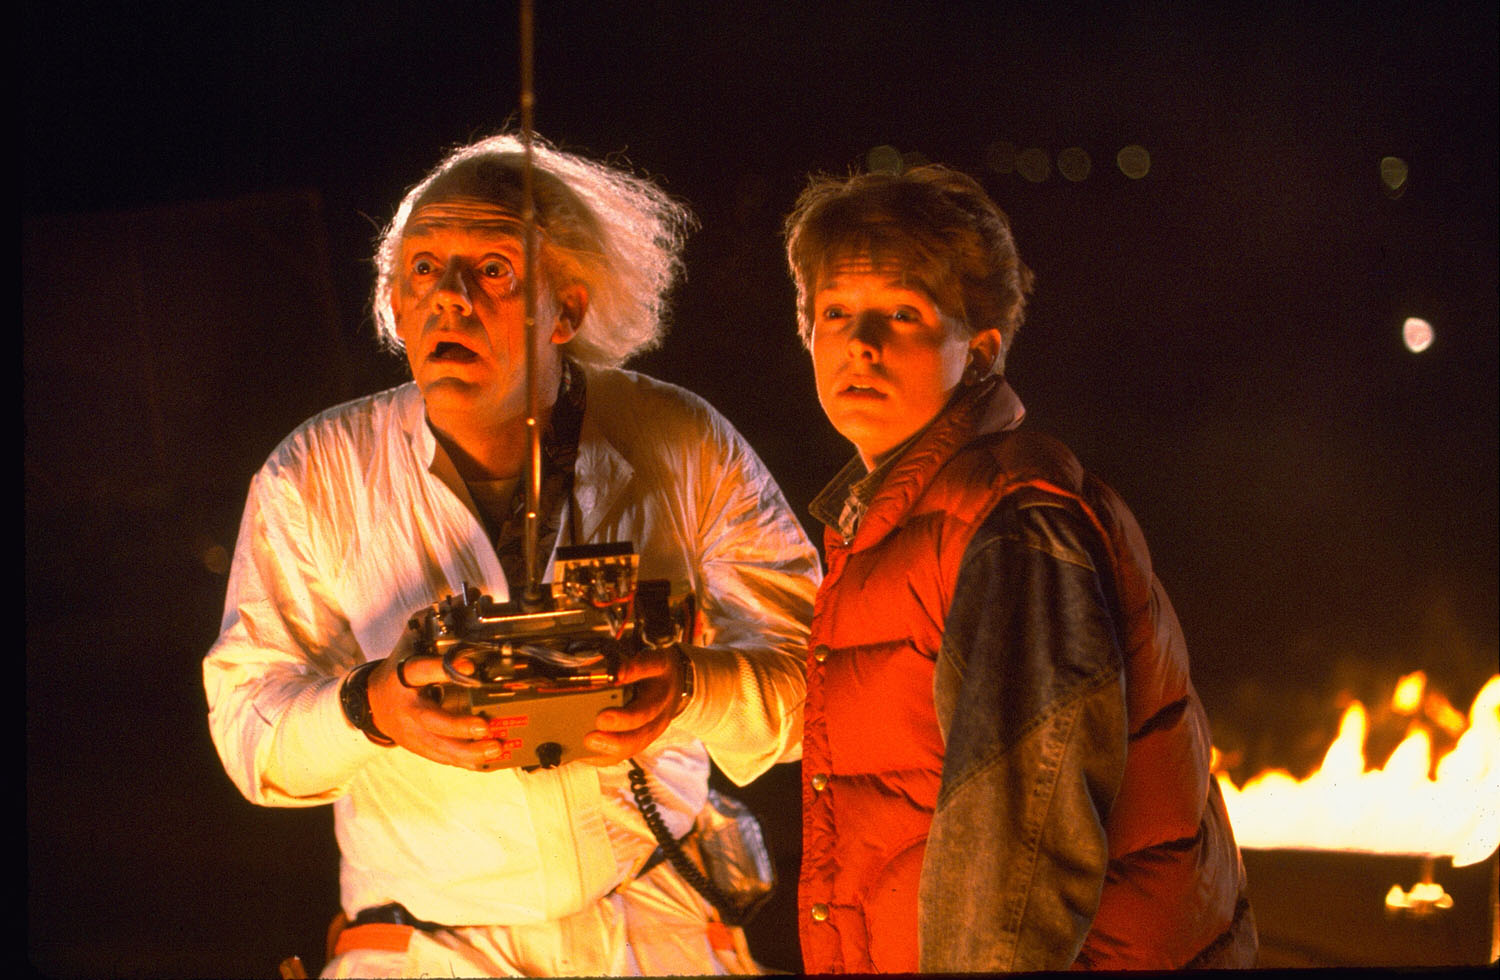 http://2.bp.blogspot.com/-8T8jec9Ktm4/TzjqPWH6P-I/AAAAAAAAAhM/OerzJLvHSmk/s1600/back-to-the-future-lloyd-michael-j-fox.jpeg